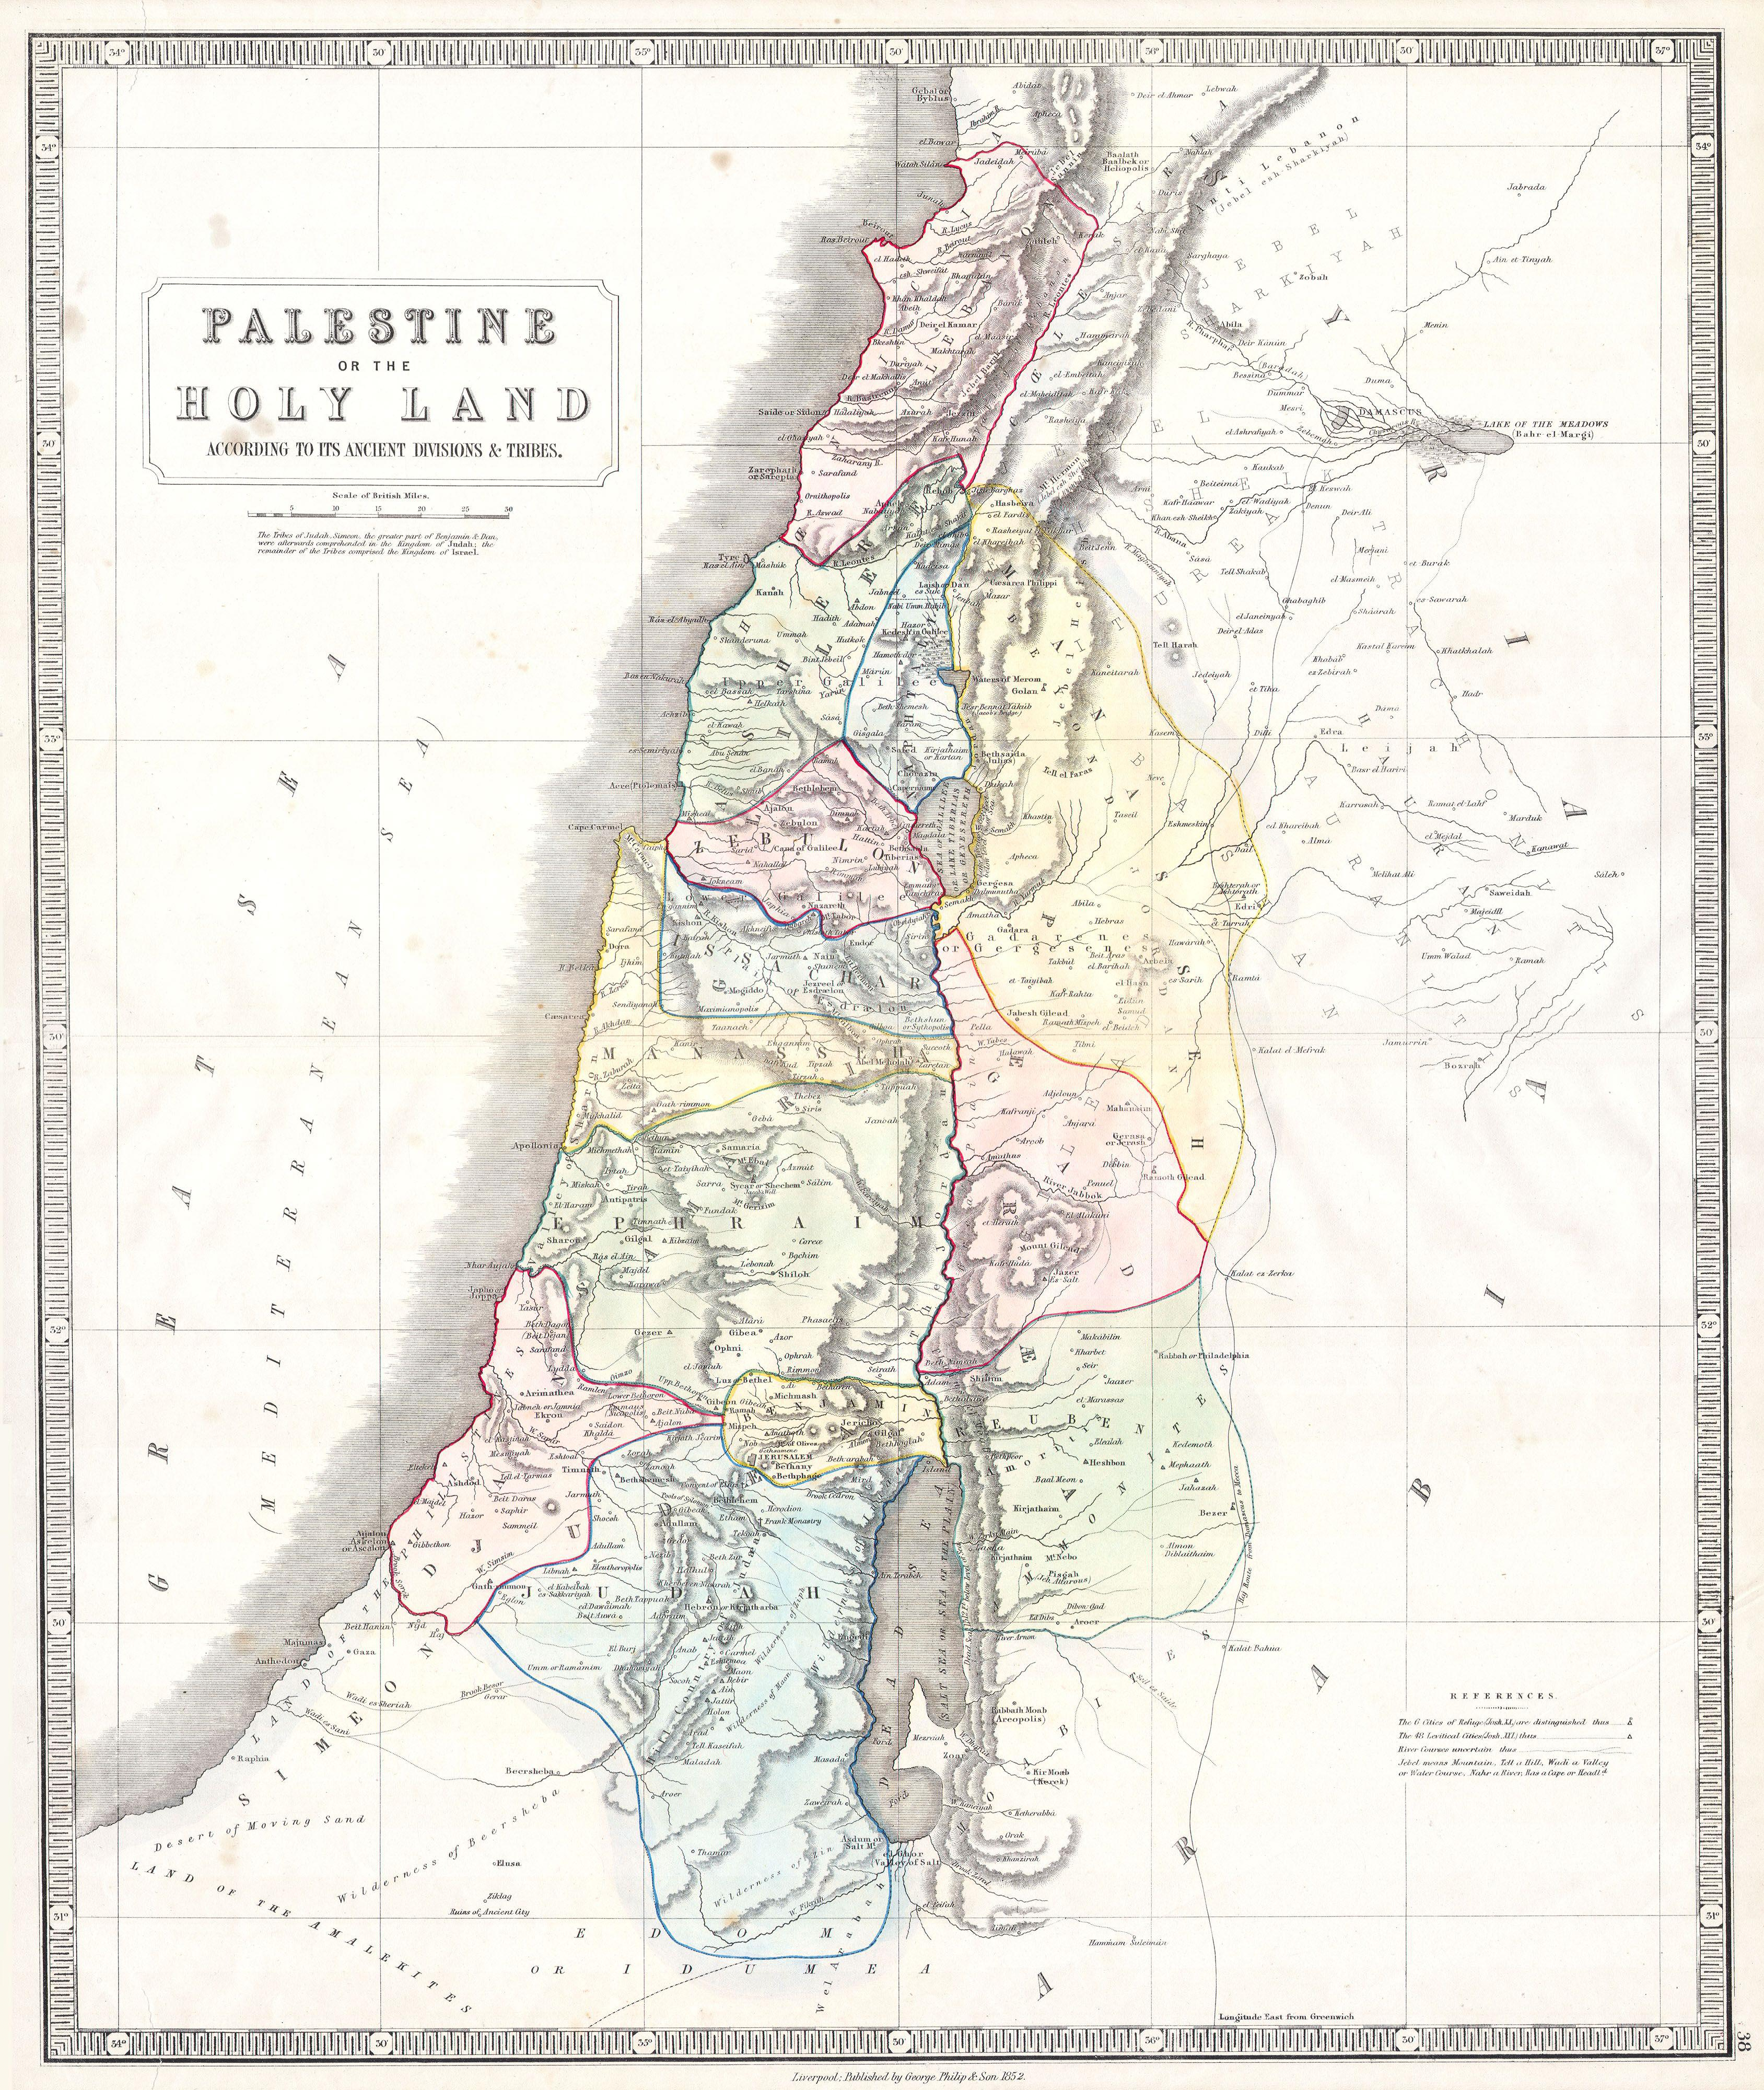 File:1852 Philip Map of Palestine - Israel - Holy Land ... on palestinian people, map of prehistoric palestine, west bank, map palestine in jesus day, ottoman empire, map of original palestine, map of turkish palestine, jordan river, canaan palestine, map of first century palestine, new testament palestine, map of roman palestine, middle east, map of ancient bible lands, map of historical palestine, map of israel palestine, gaza strip, six-day war, palestinian territories, dead sea, cities in palestine, map of british palestine, map of medieval palestine, yasser arafat, map of ancient palestine, map of modern day palestine, map of jesus palestine,